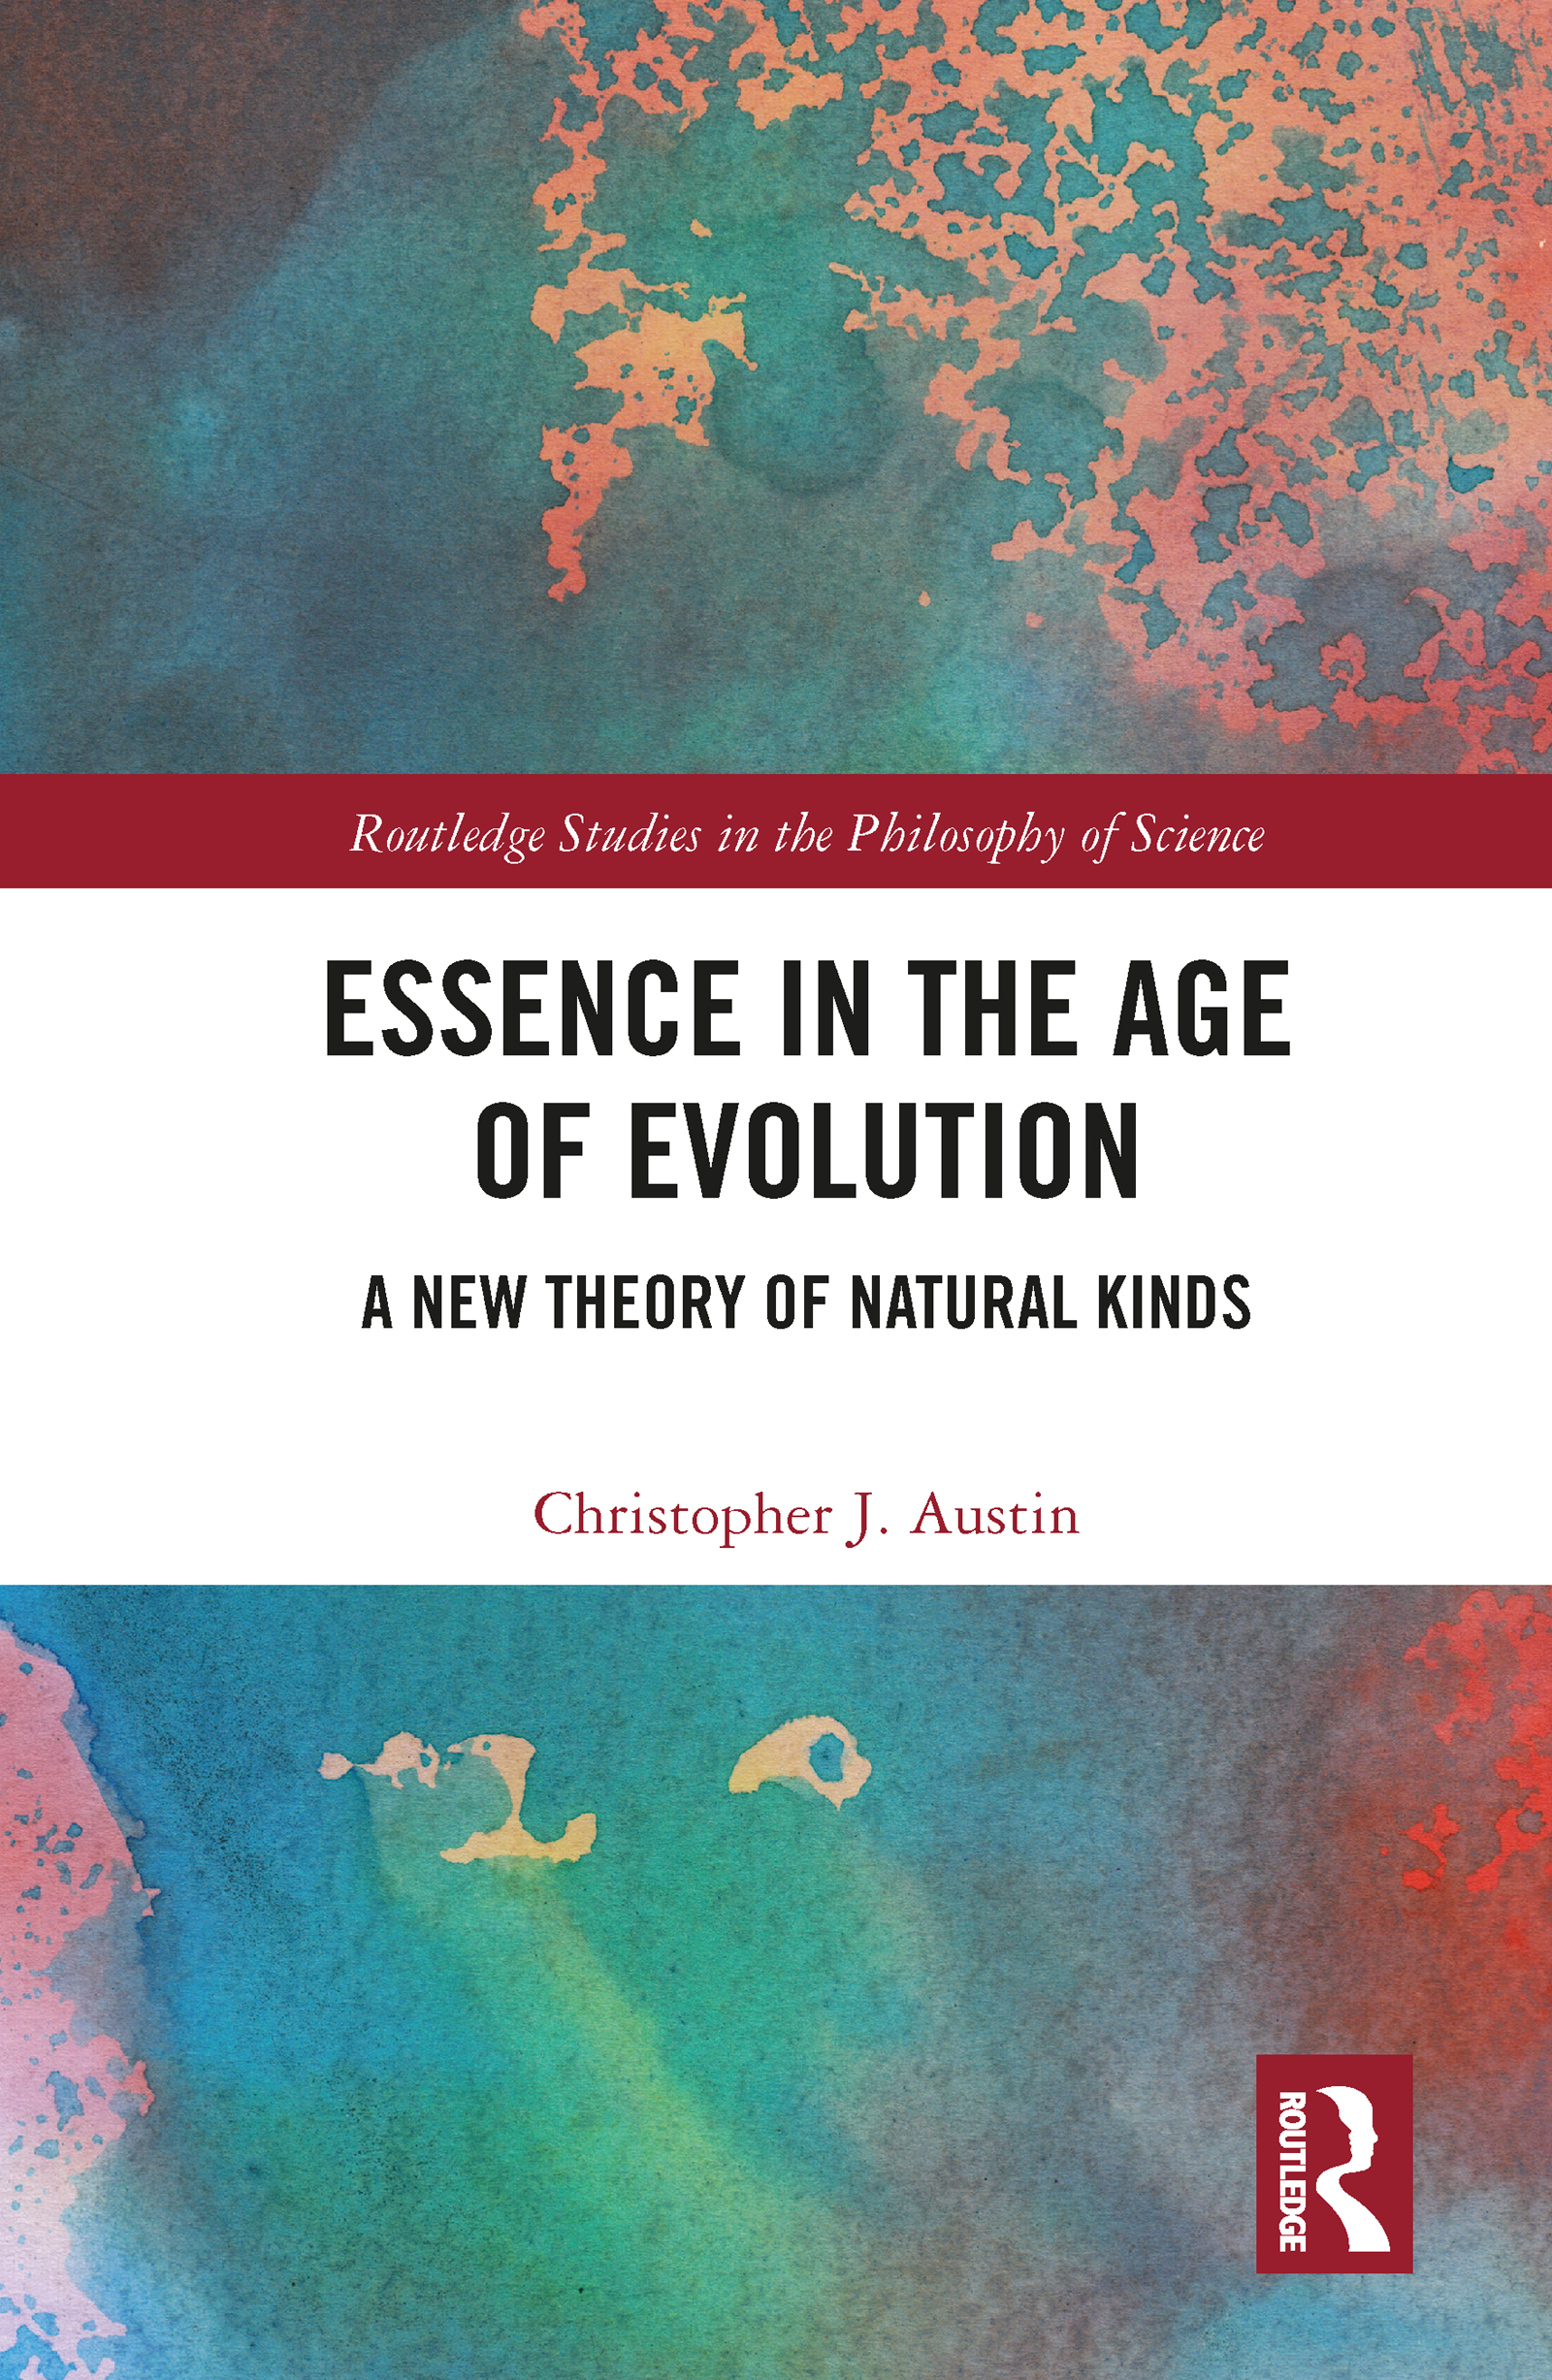 Essence in the Age of Evolution